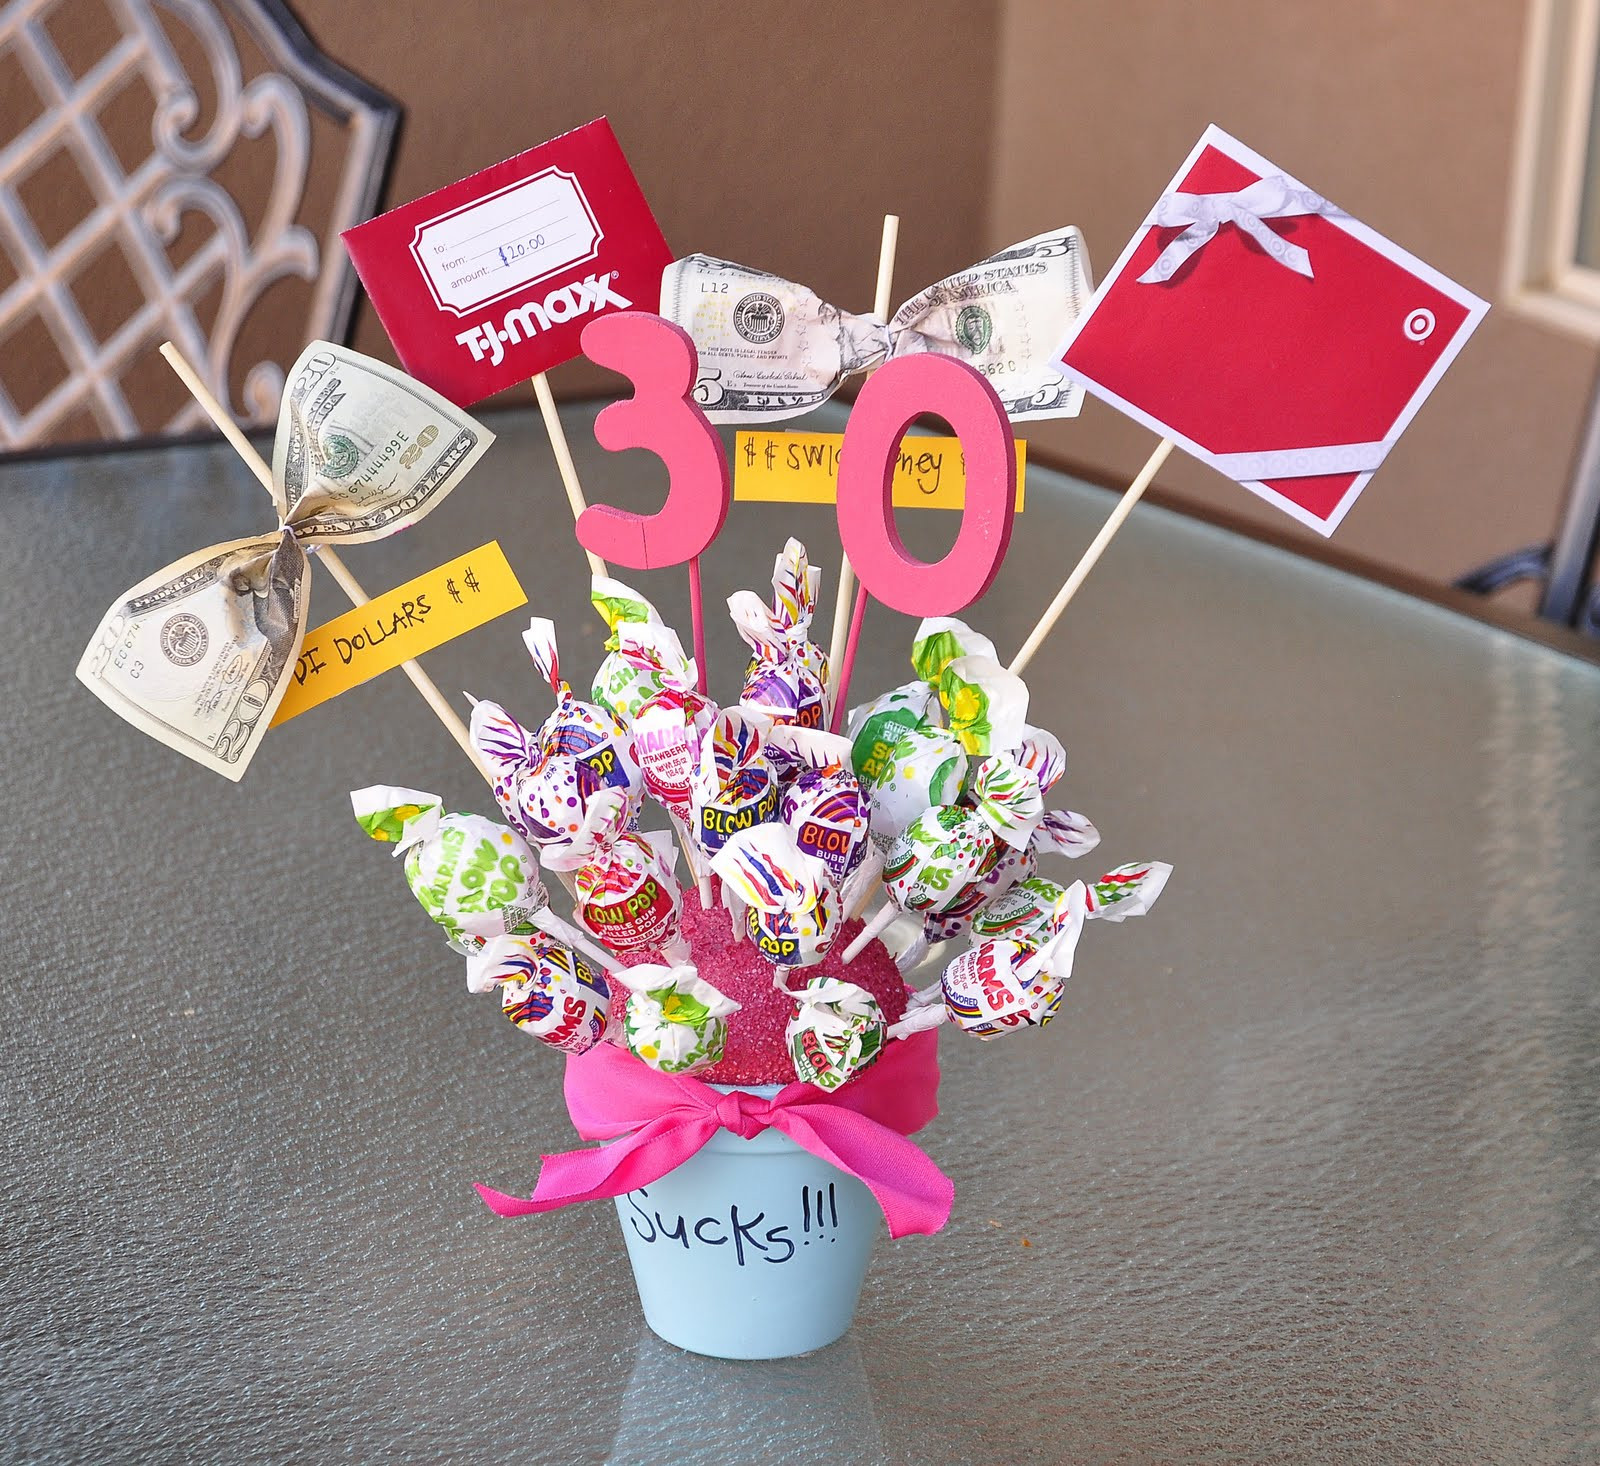 Best ideas about 30th Birthday Ideas . Save or Pin 30th Birthday Gifts Birthday Now.